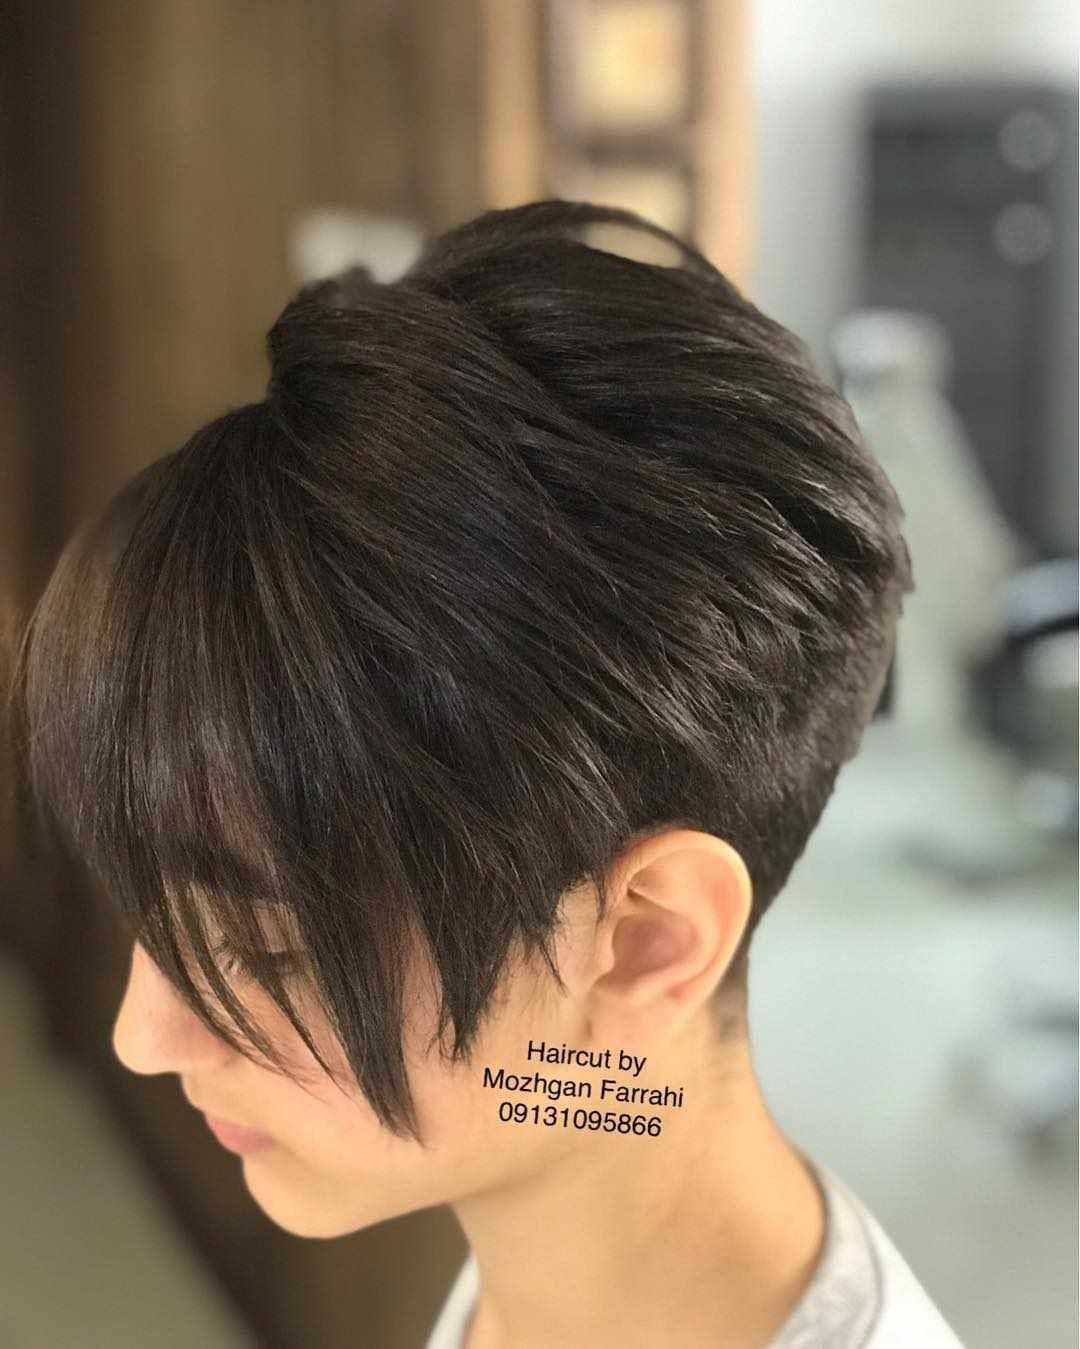 11 Cute Short Haircuts for Women 11 - Short hairstyles for many